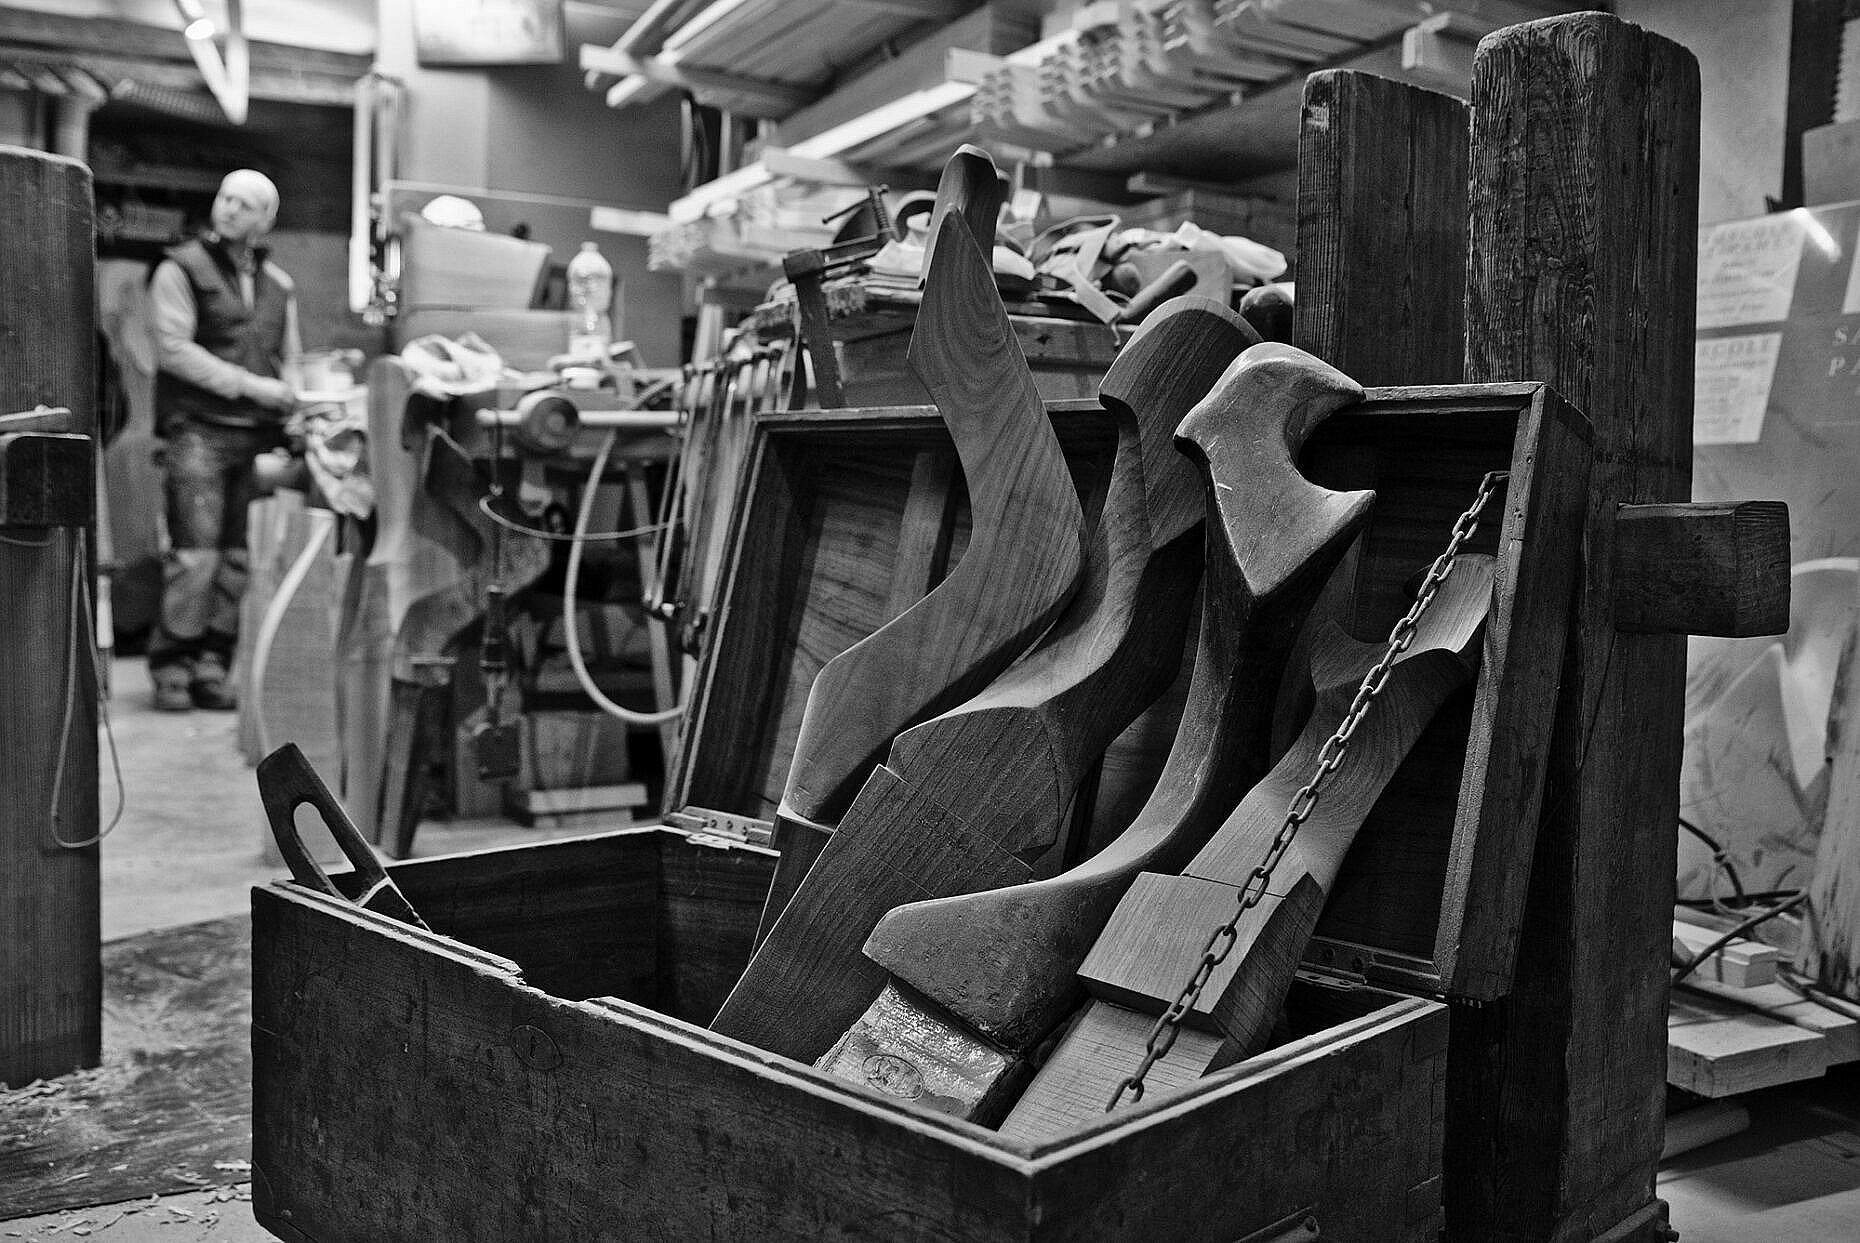 A crate of forcole (oarlocks) in Saverio Pastor's workshop